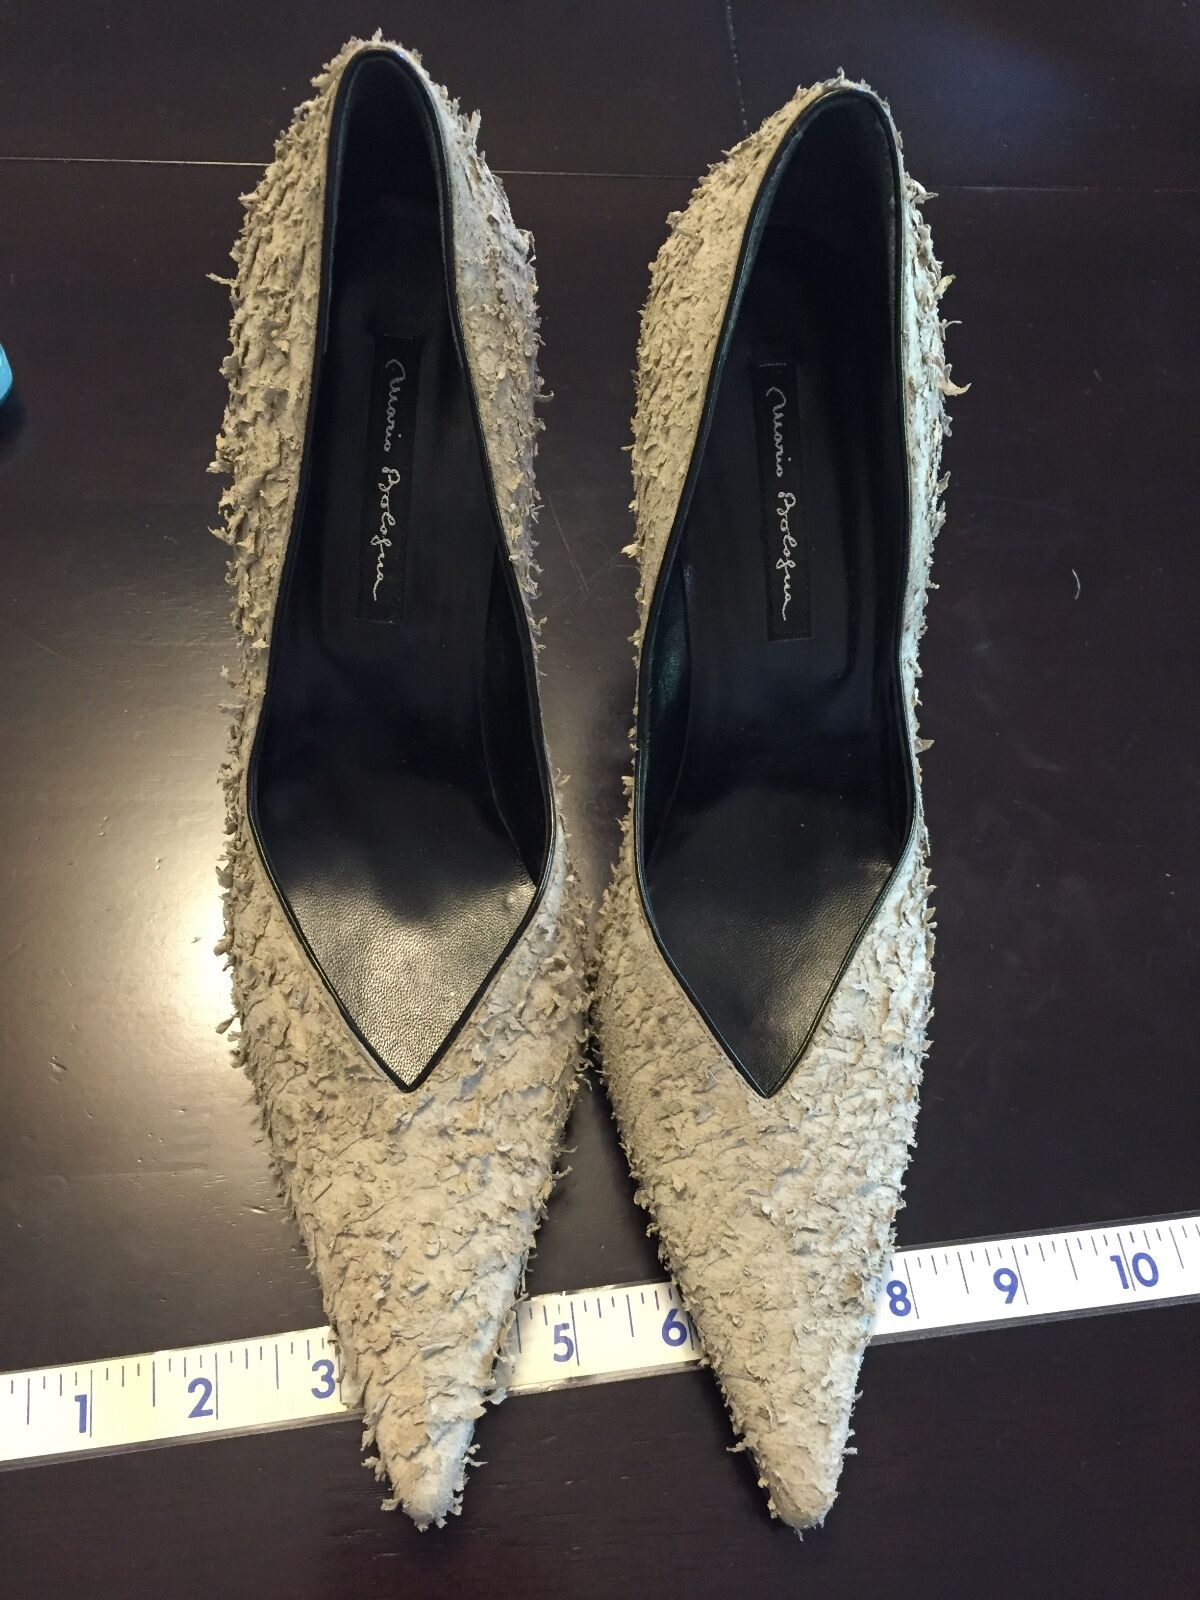 6a00b2c6178 MARIO PROLOGUE WOMAN WOMAN WOMAN HIGH HEELS FORMAL MADE IN ITALY US SIZE 8  EU 38 7fb7a0